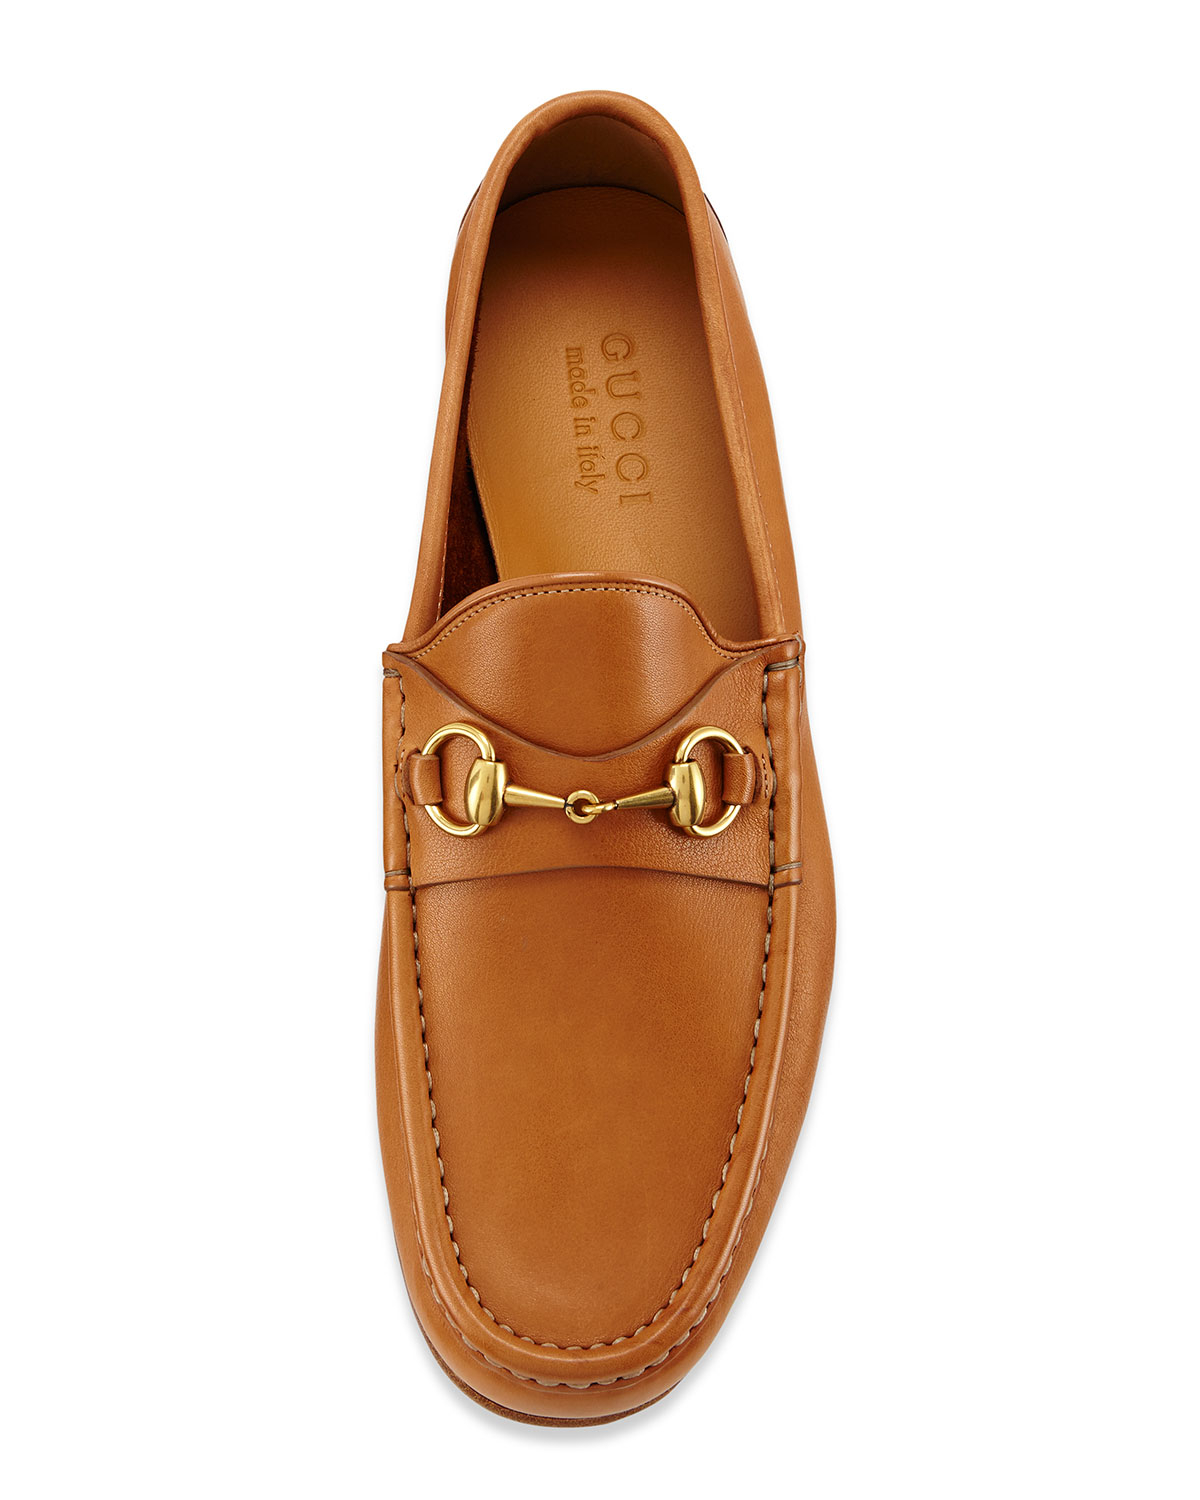 98e3358a04b Lyst - Gucci Horsebit Leather Loafers in Brown